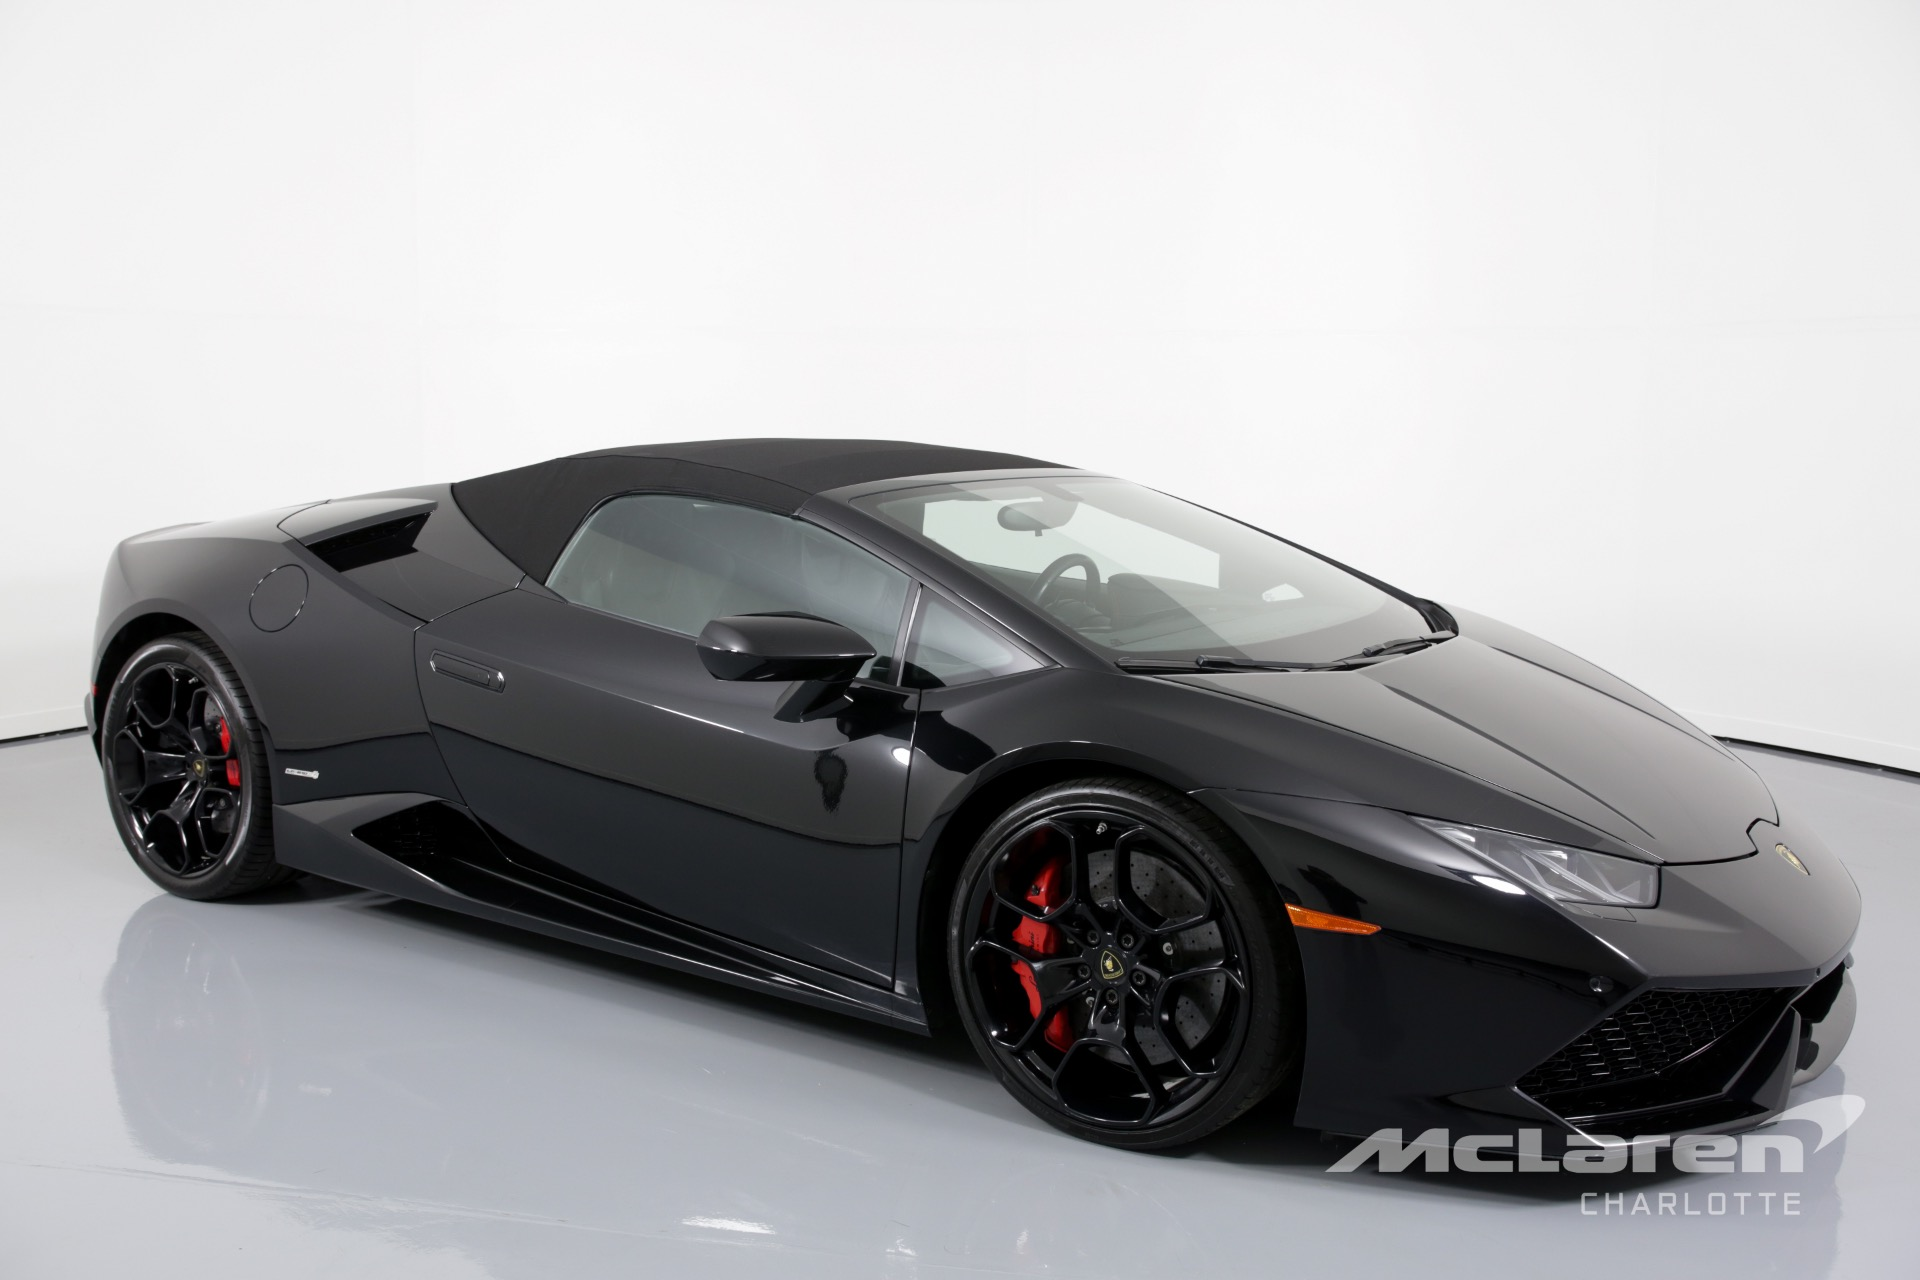 Used 2017 Lamborghini Huracan Lp 610 4 Spyder For Sale 224 996